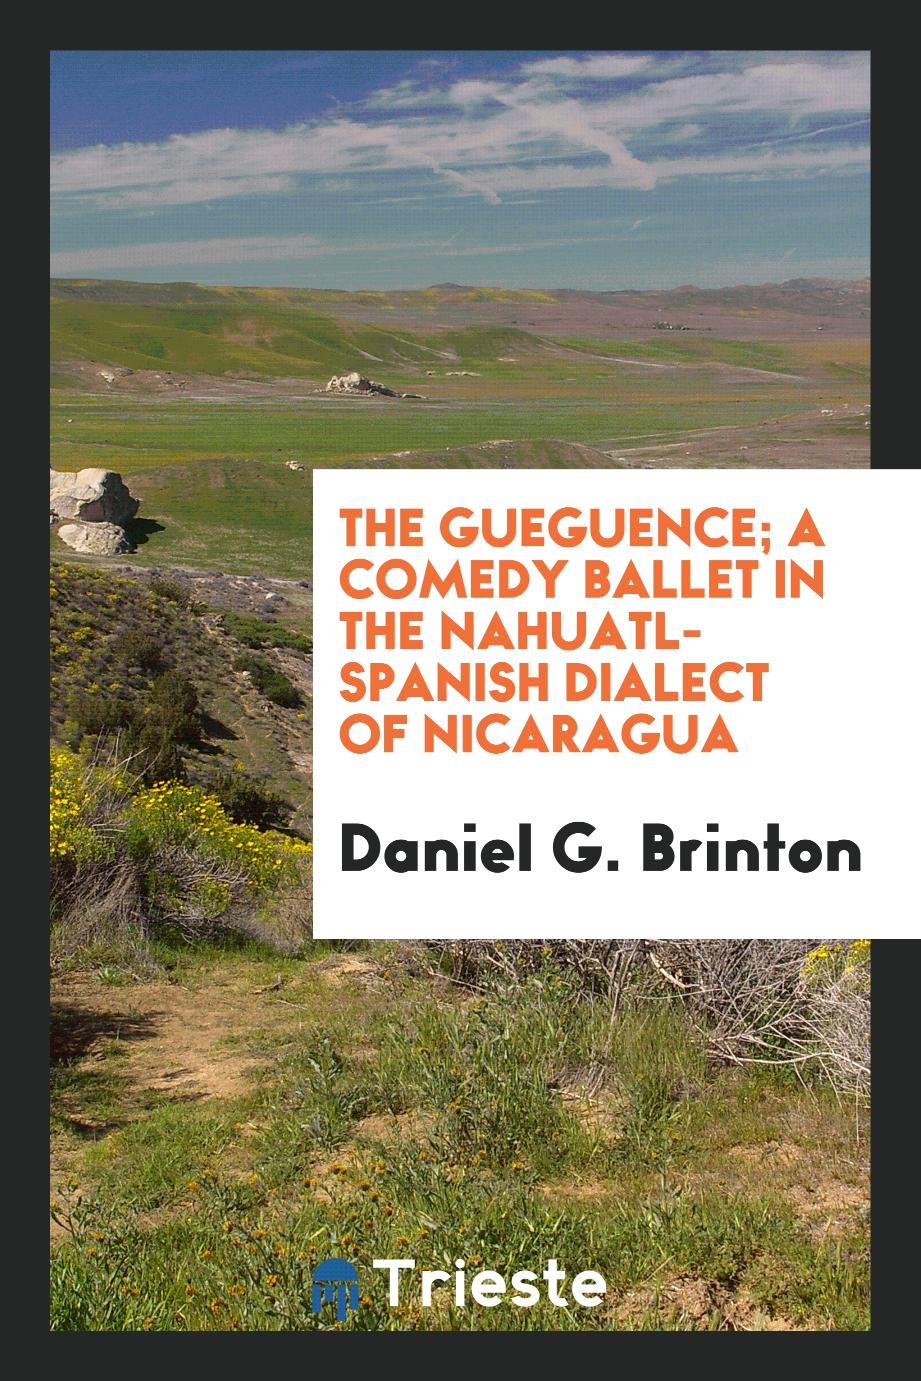 The Gueguence; a comedy ballet in the Nahuatl-Spanish dialect of Nicaragua